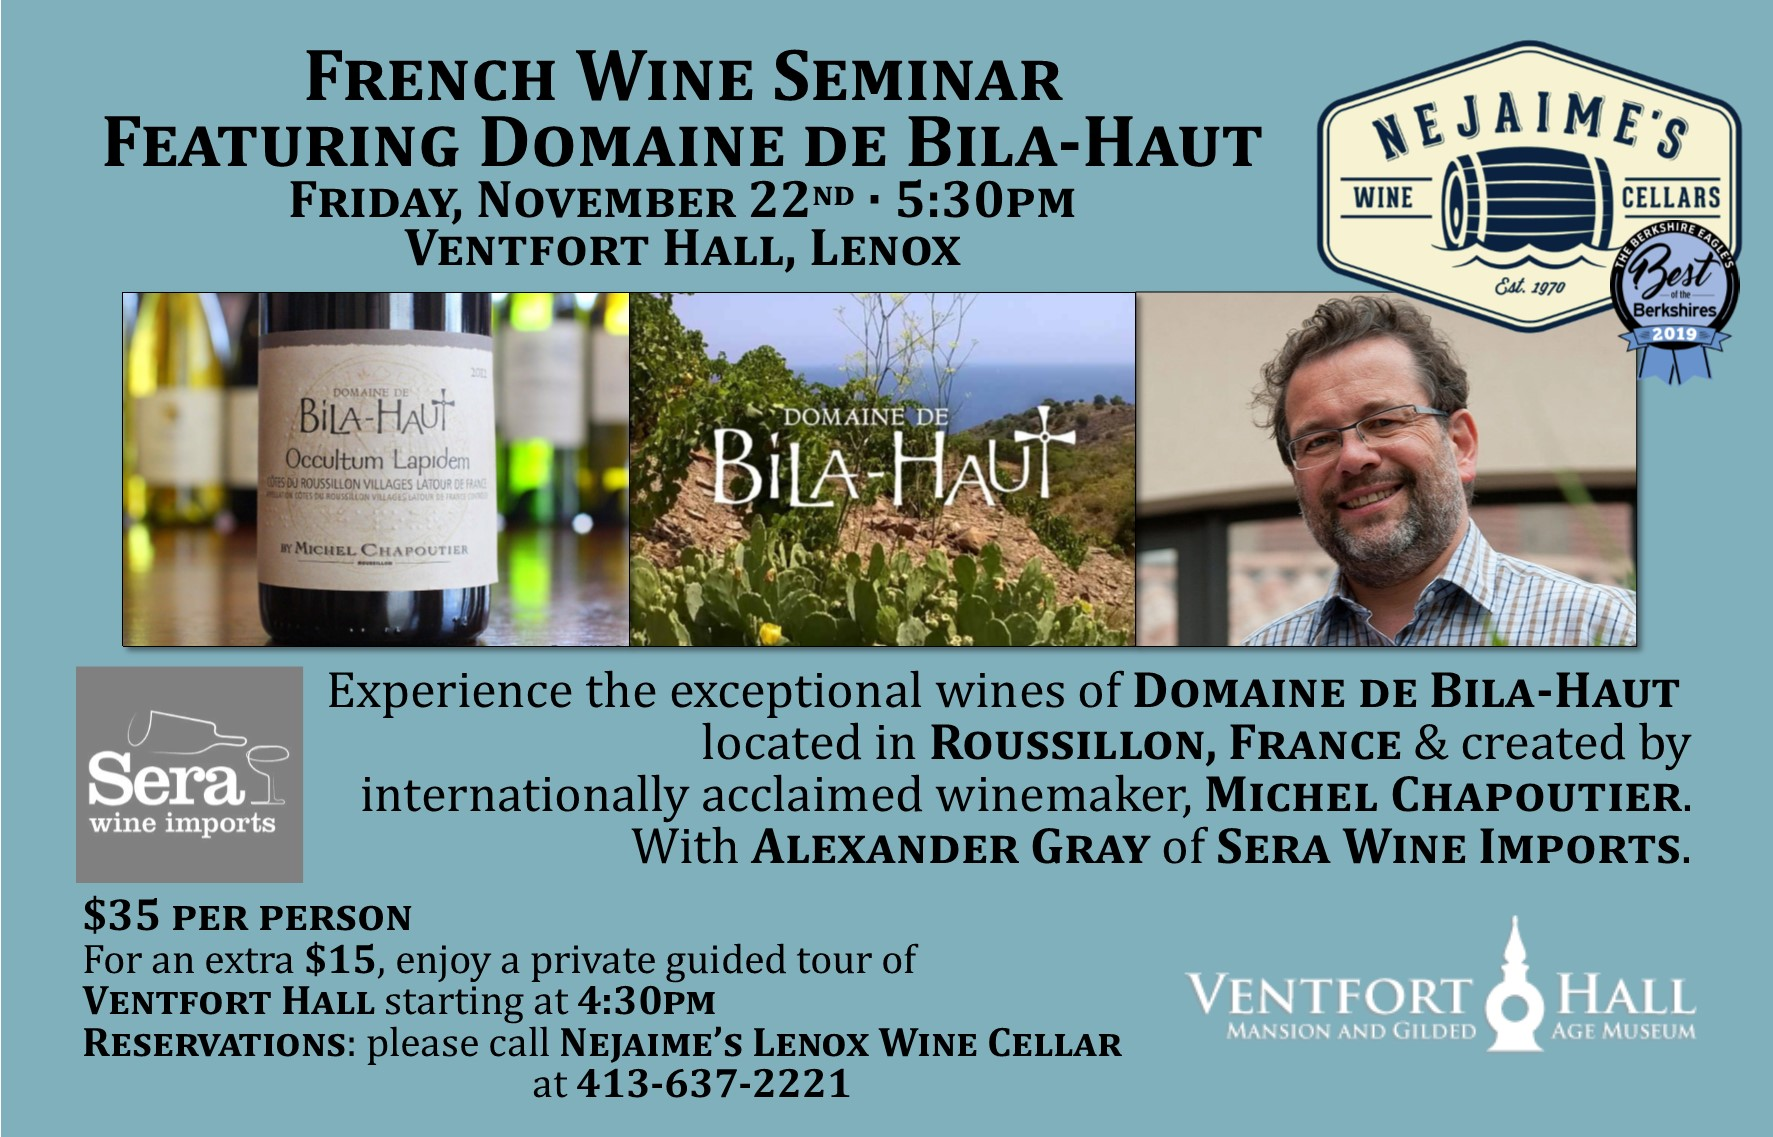 French Wine Seminar Featuring Domaine de Bila-Haut Presented by Nejaime's